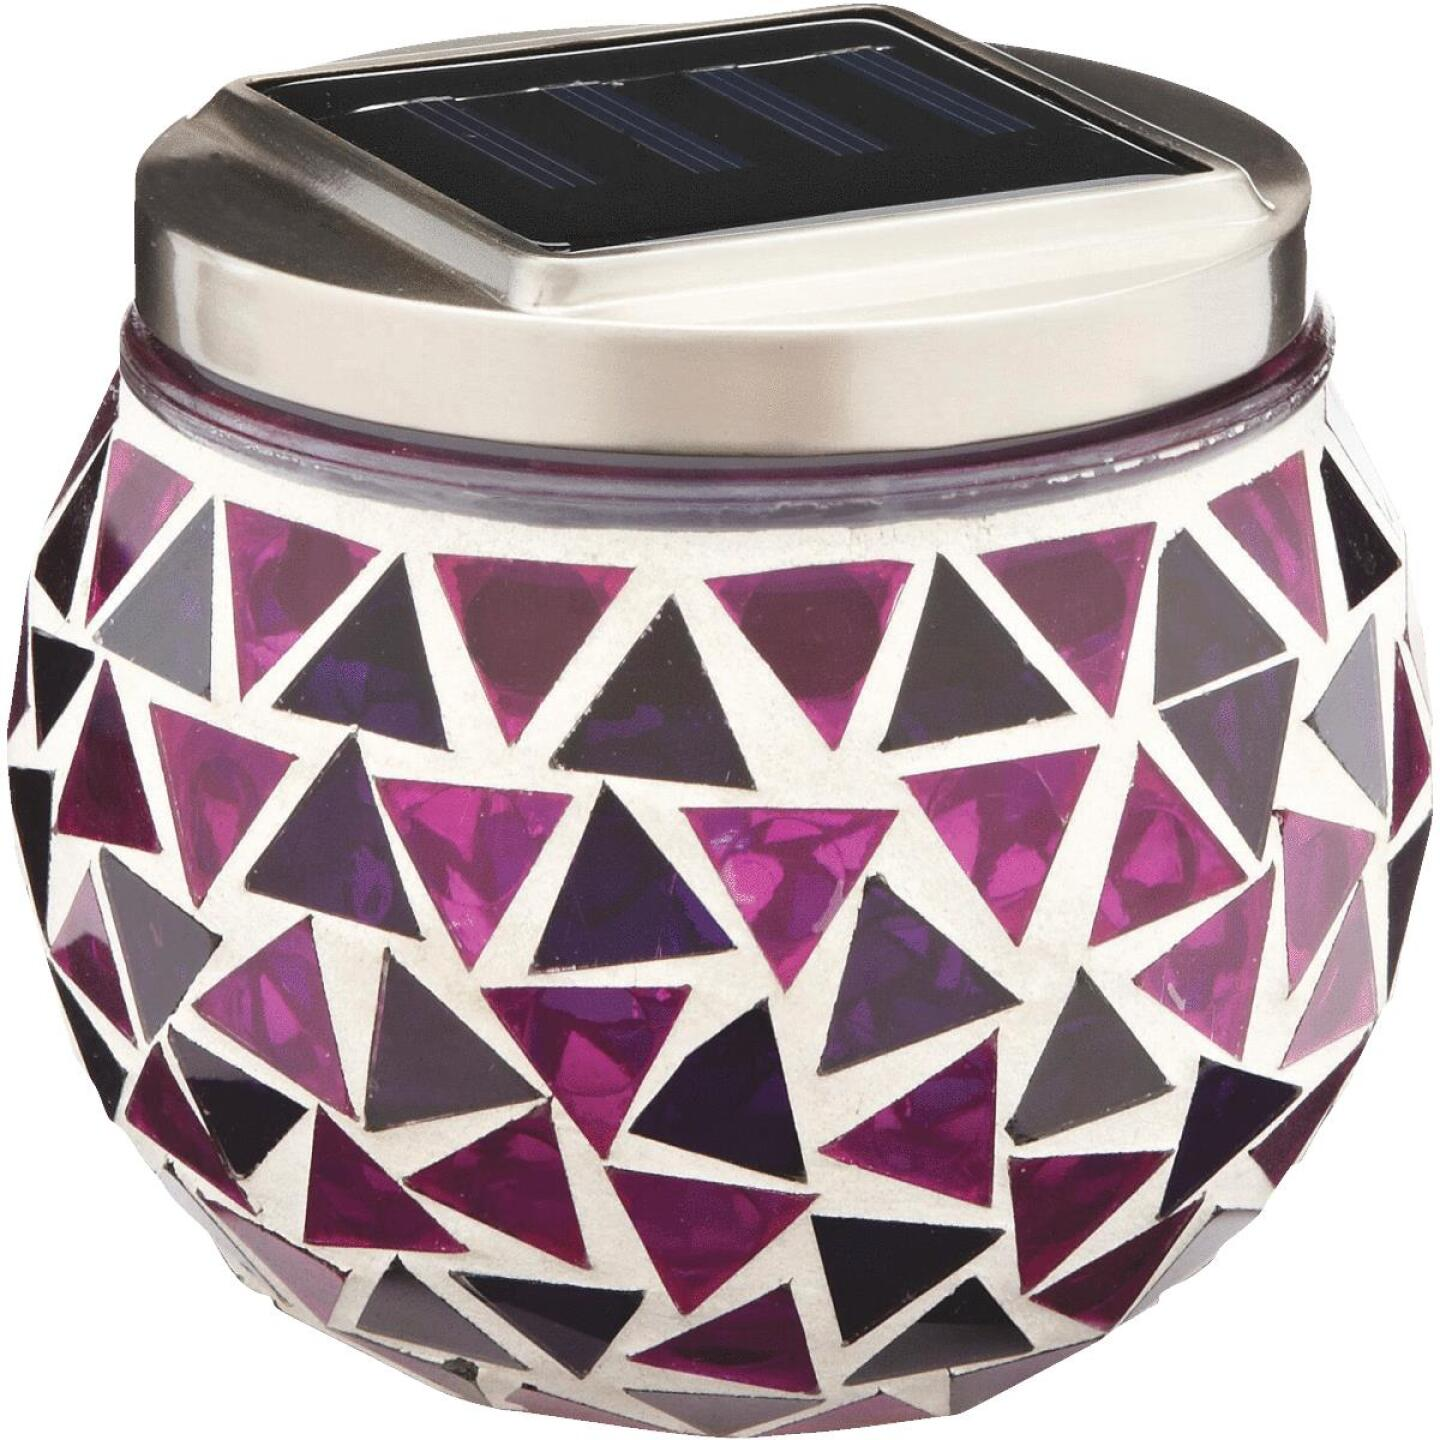 Outdoor Expressions 3.5 In. H. x 3.5 In. Dia. Blue or Purple Tile Tabletop Solar Patio Light Image 2